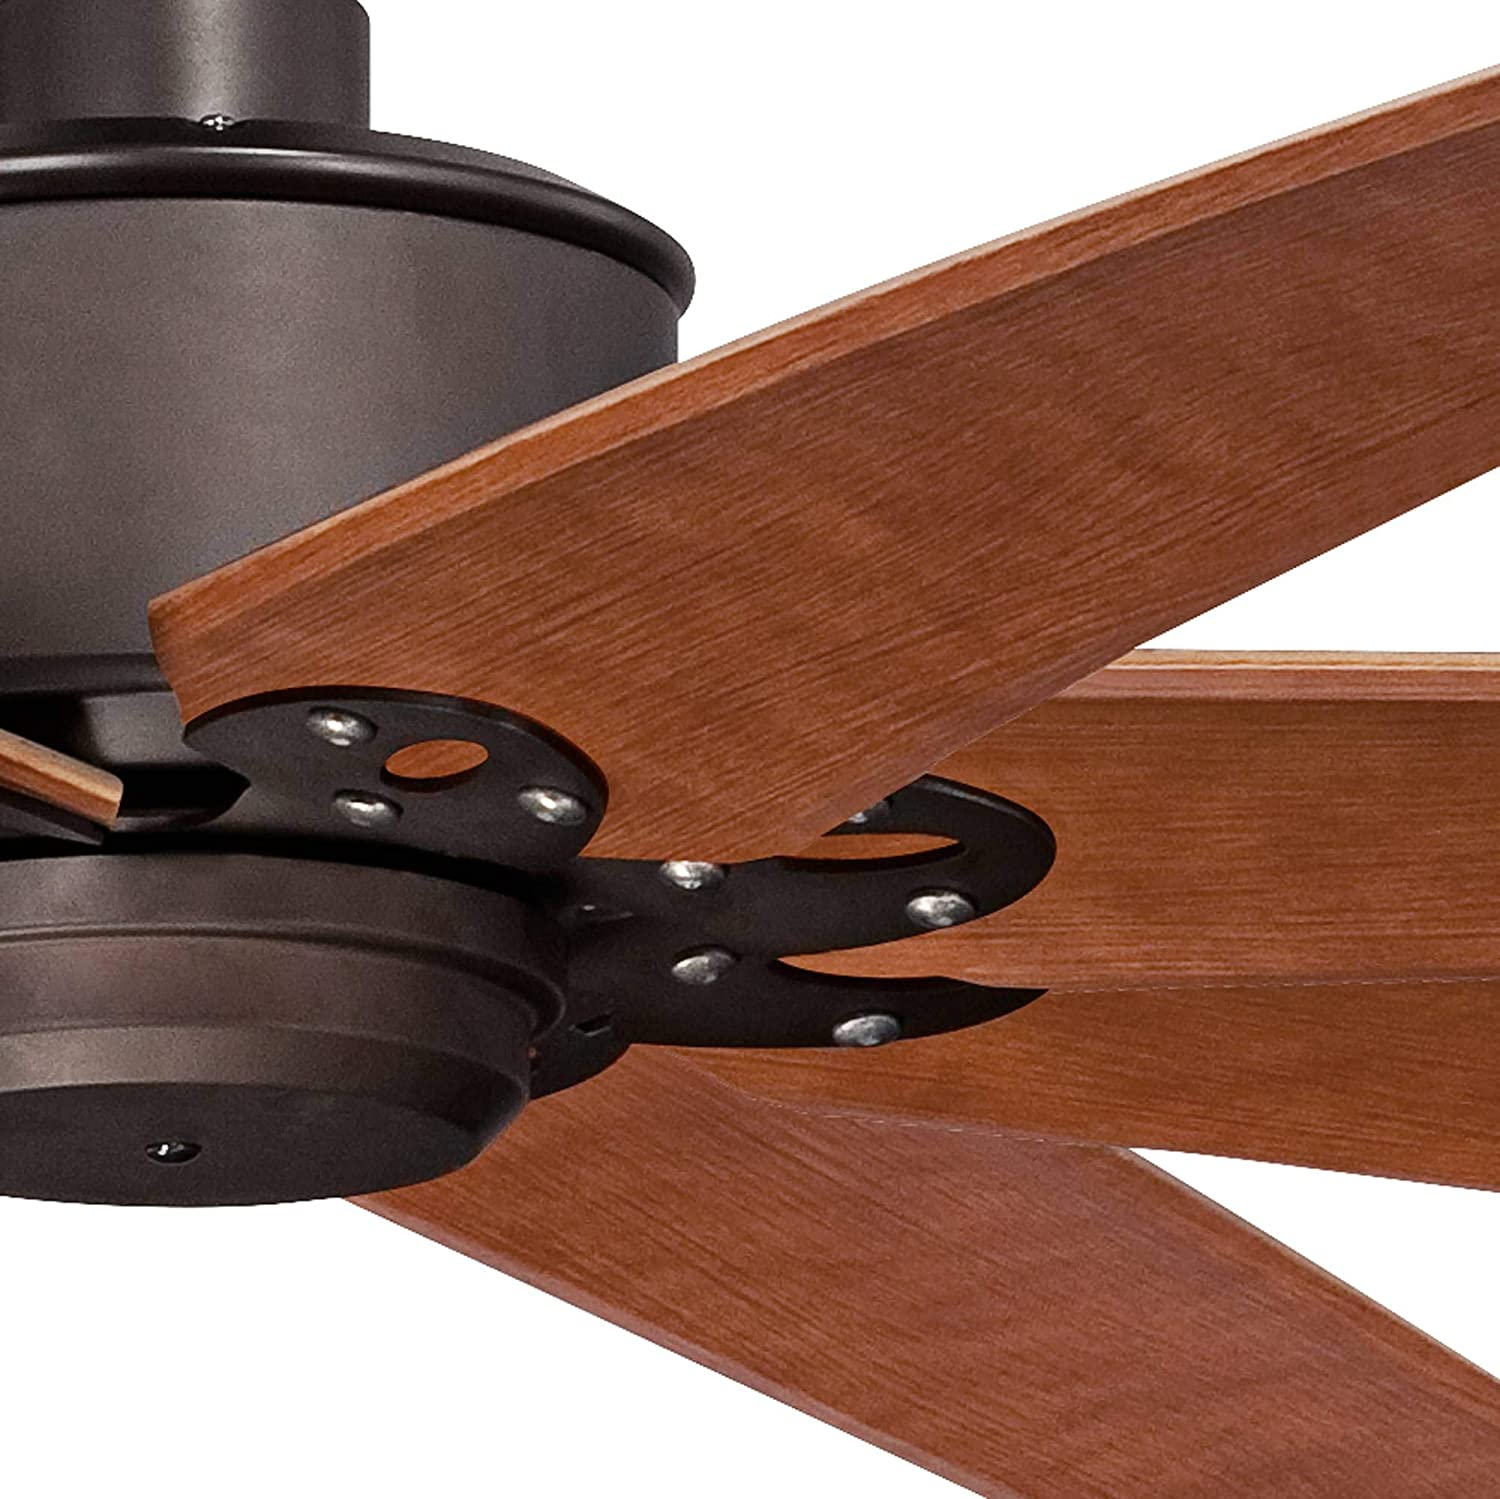 Buy 72 Predator Rustic Industrial Farmhouse Large Outdoor Ceiling Fan With Remote Control English Bronze Cherry Damp Rated For Patio Exterior House Porch Gazebo Garage Barn Roof Casa Vieja Online In